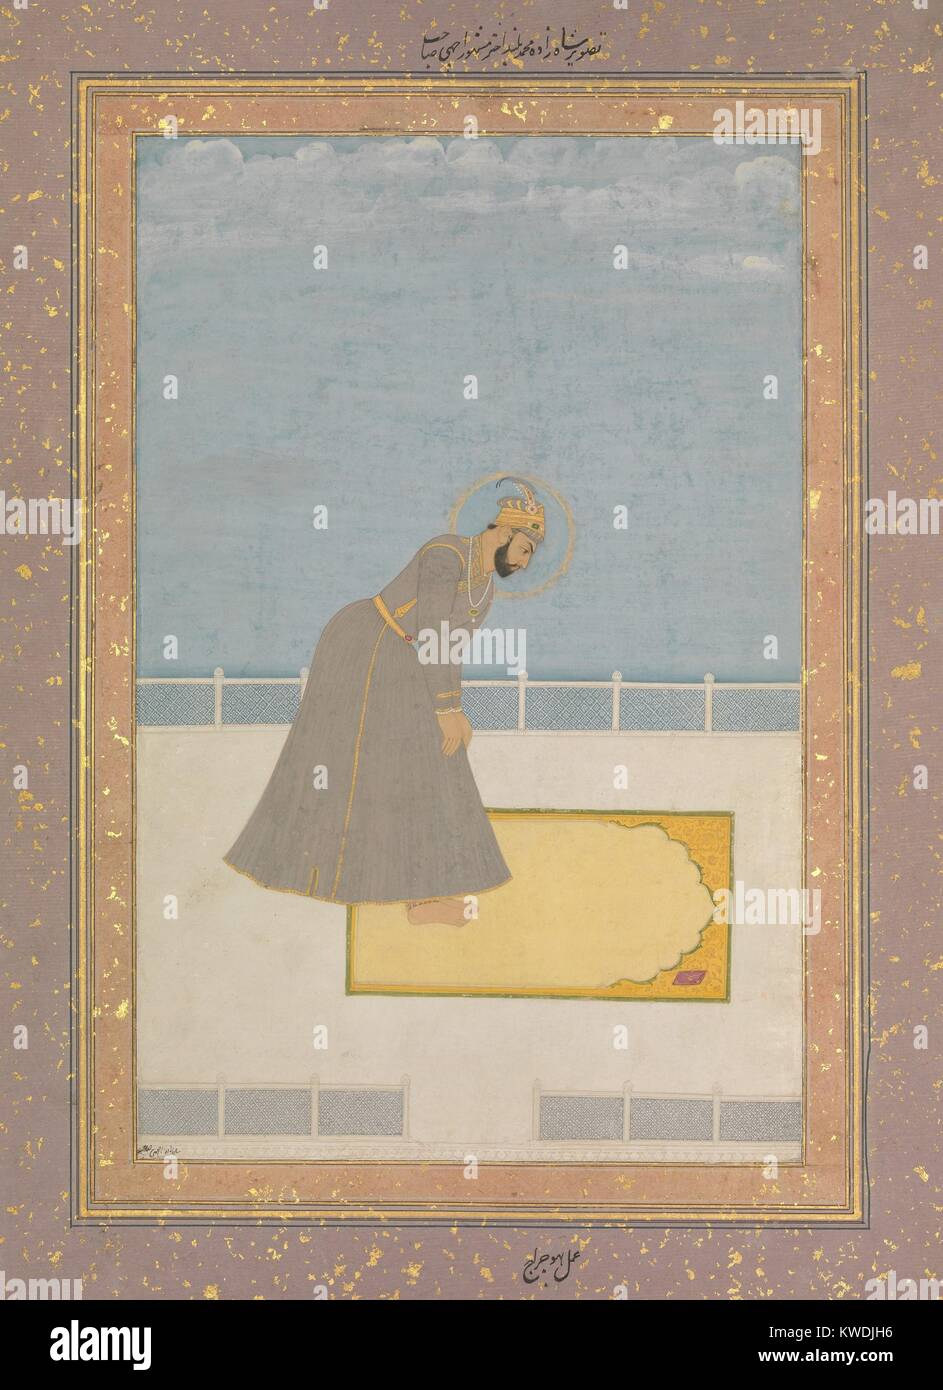 PRINCE MOHAMMED BULAND AKHTAR AT PRAYER, by Hujraj, Indian, Mughal painting, 17th c., watercolor. An Islamic Mughal - Stock Image